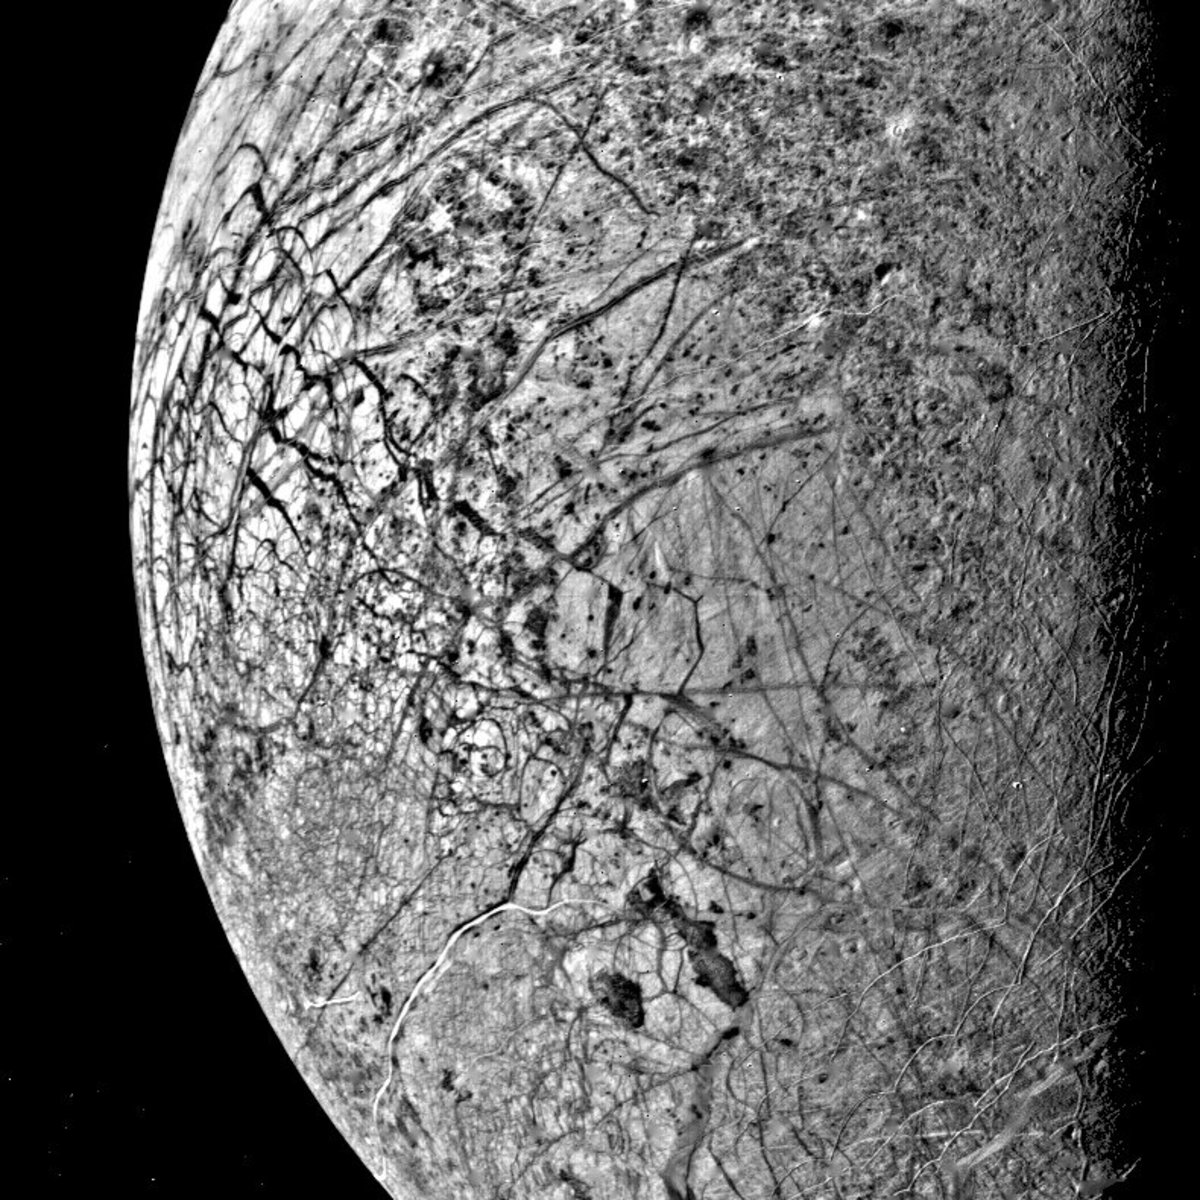 The 'fractured' sufrace of Europa. Europa has surprisingly few impact craters on its surface, suggesting processes are still modifying the surface.